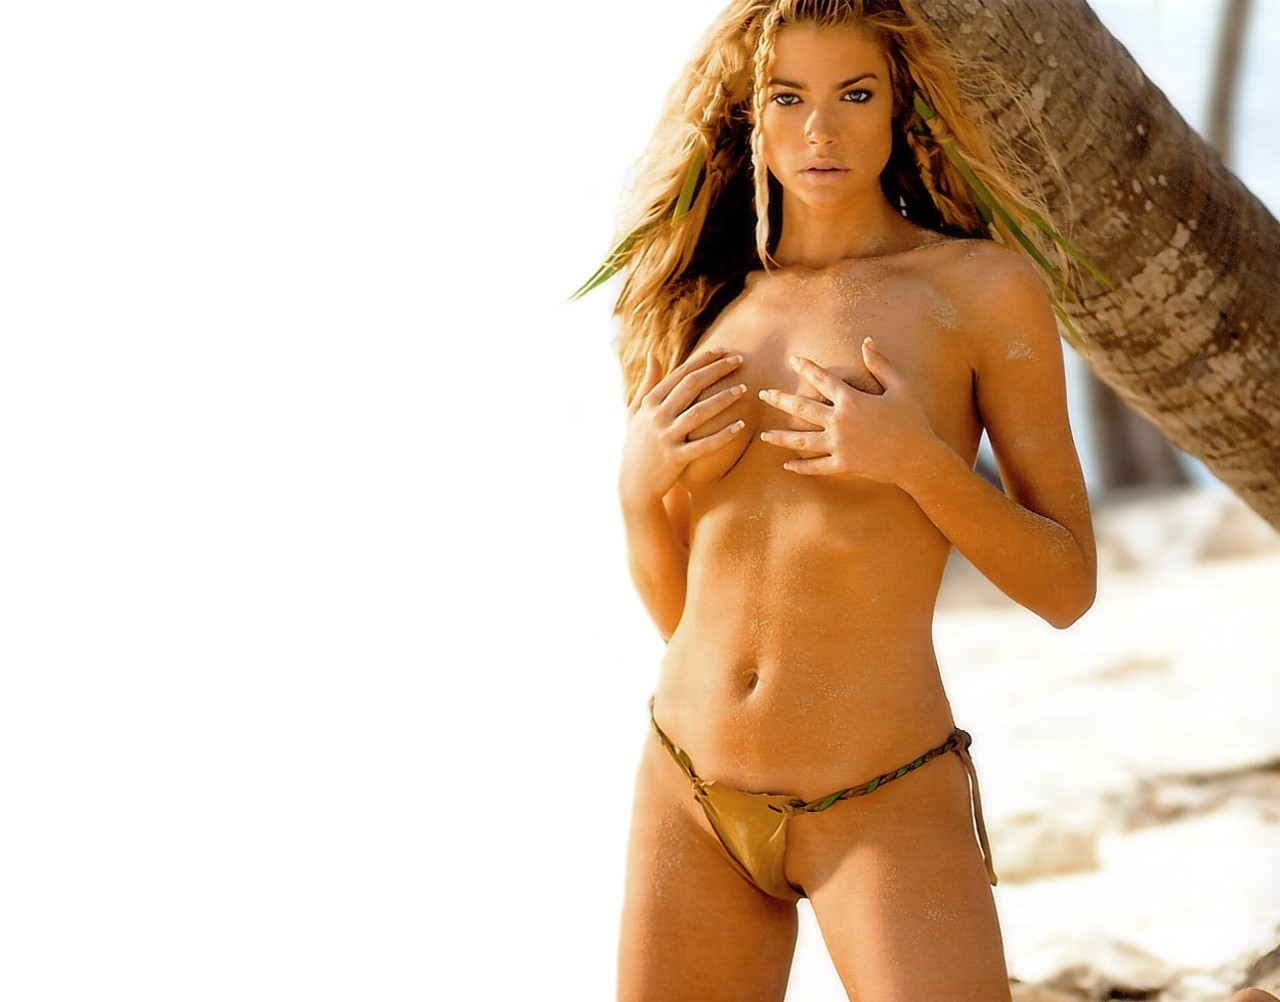 Denise richards nude pirn — pic 13